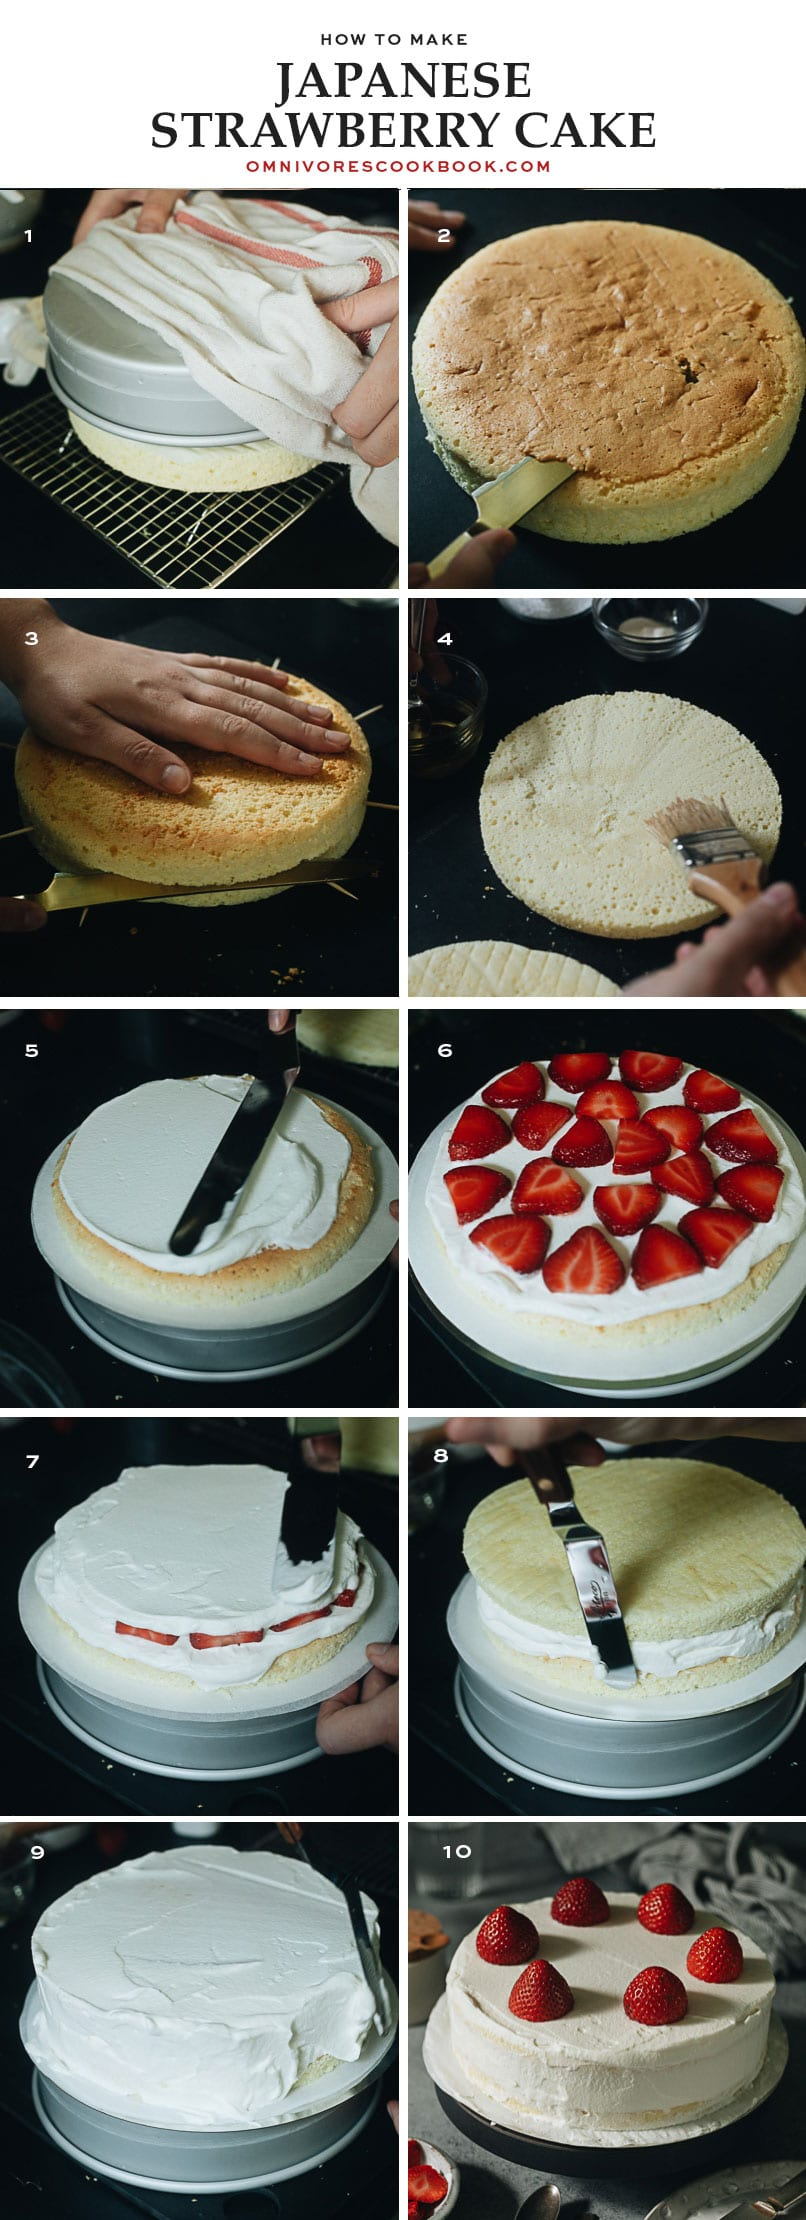 How to assemble the Japanese strawberry cake